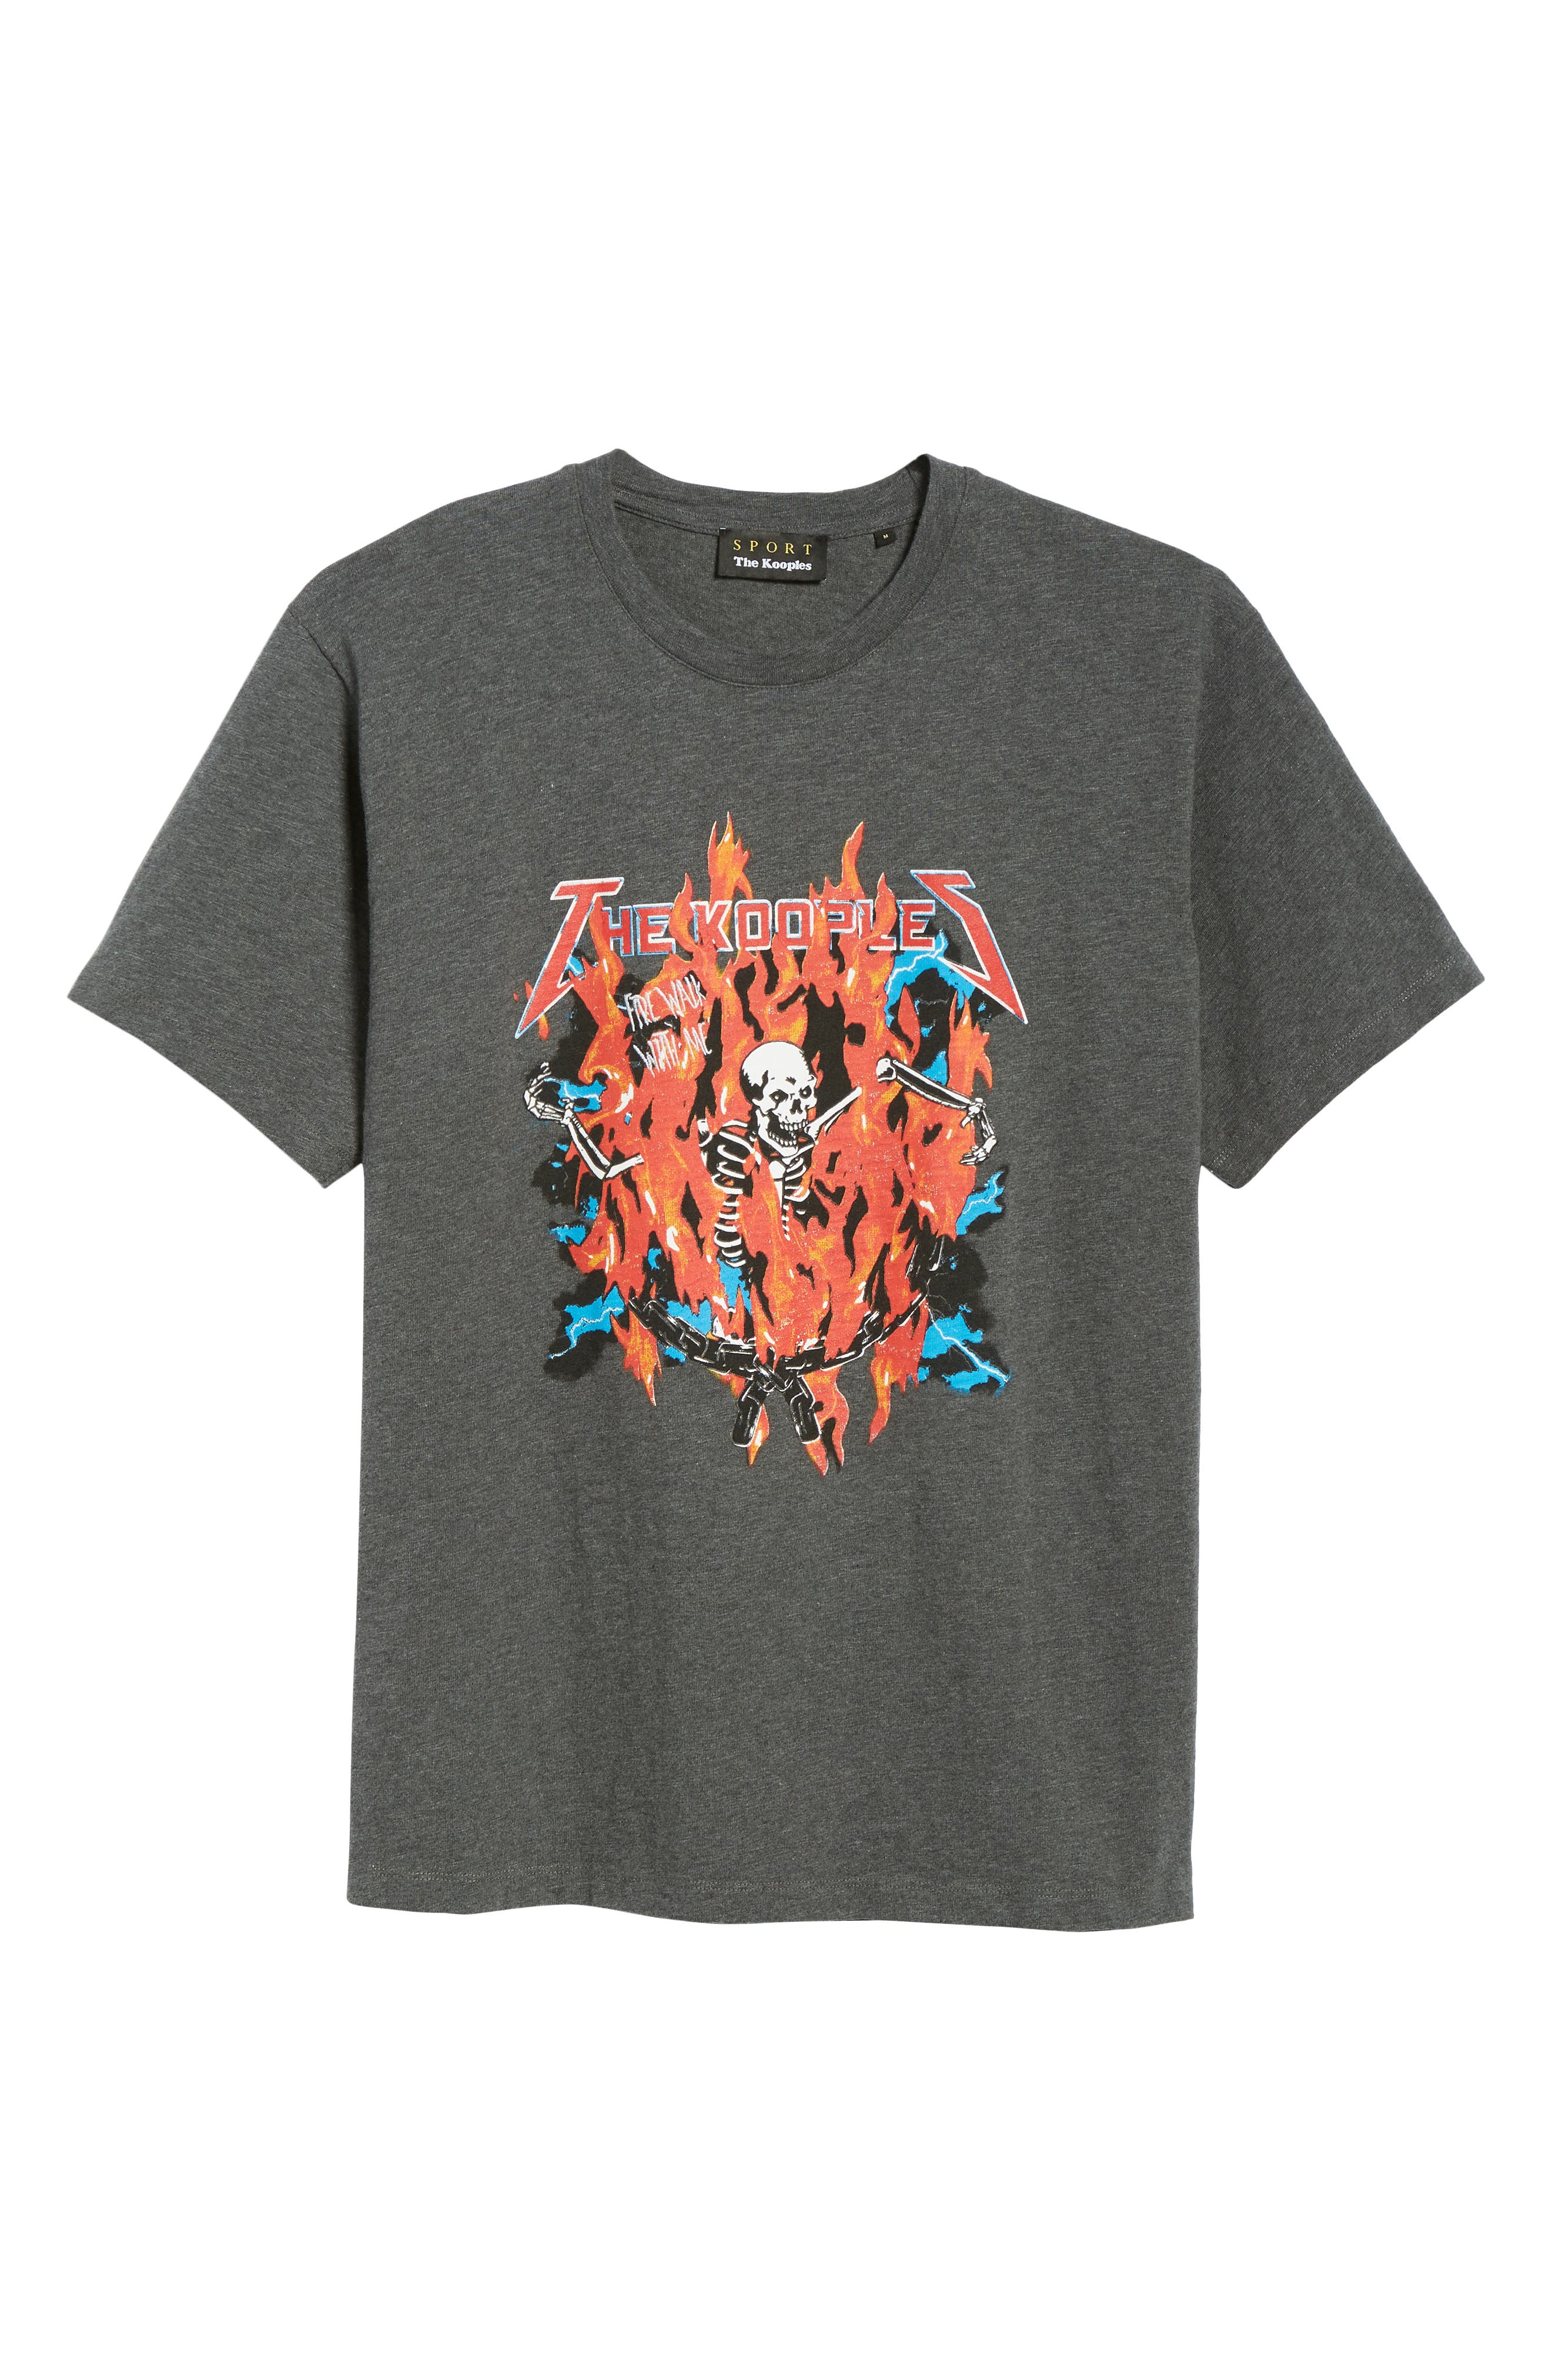 Fire Walk with Me Graphic T-Shirt,                             Alternate thumbnail 6, color,                             GREY